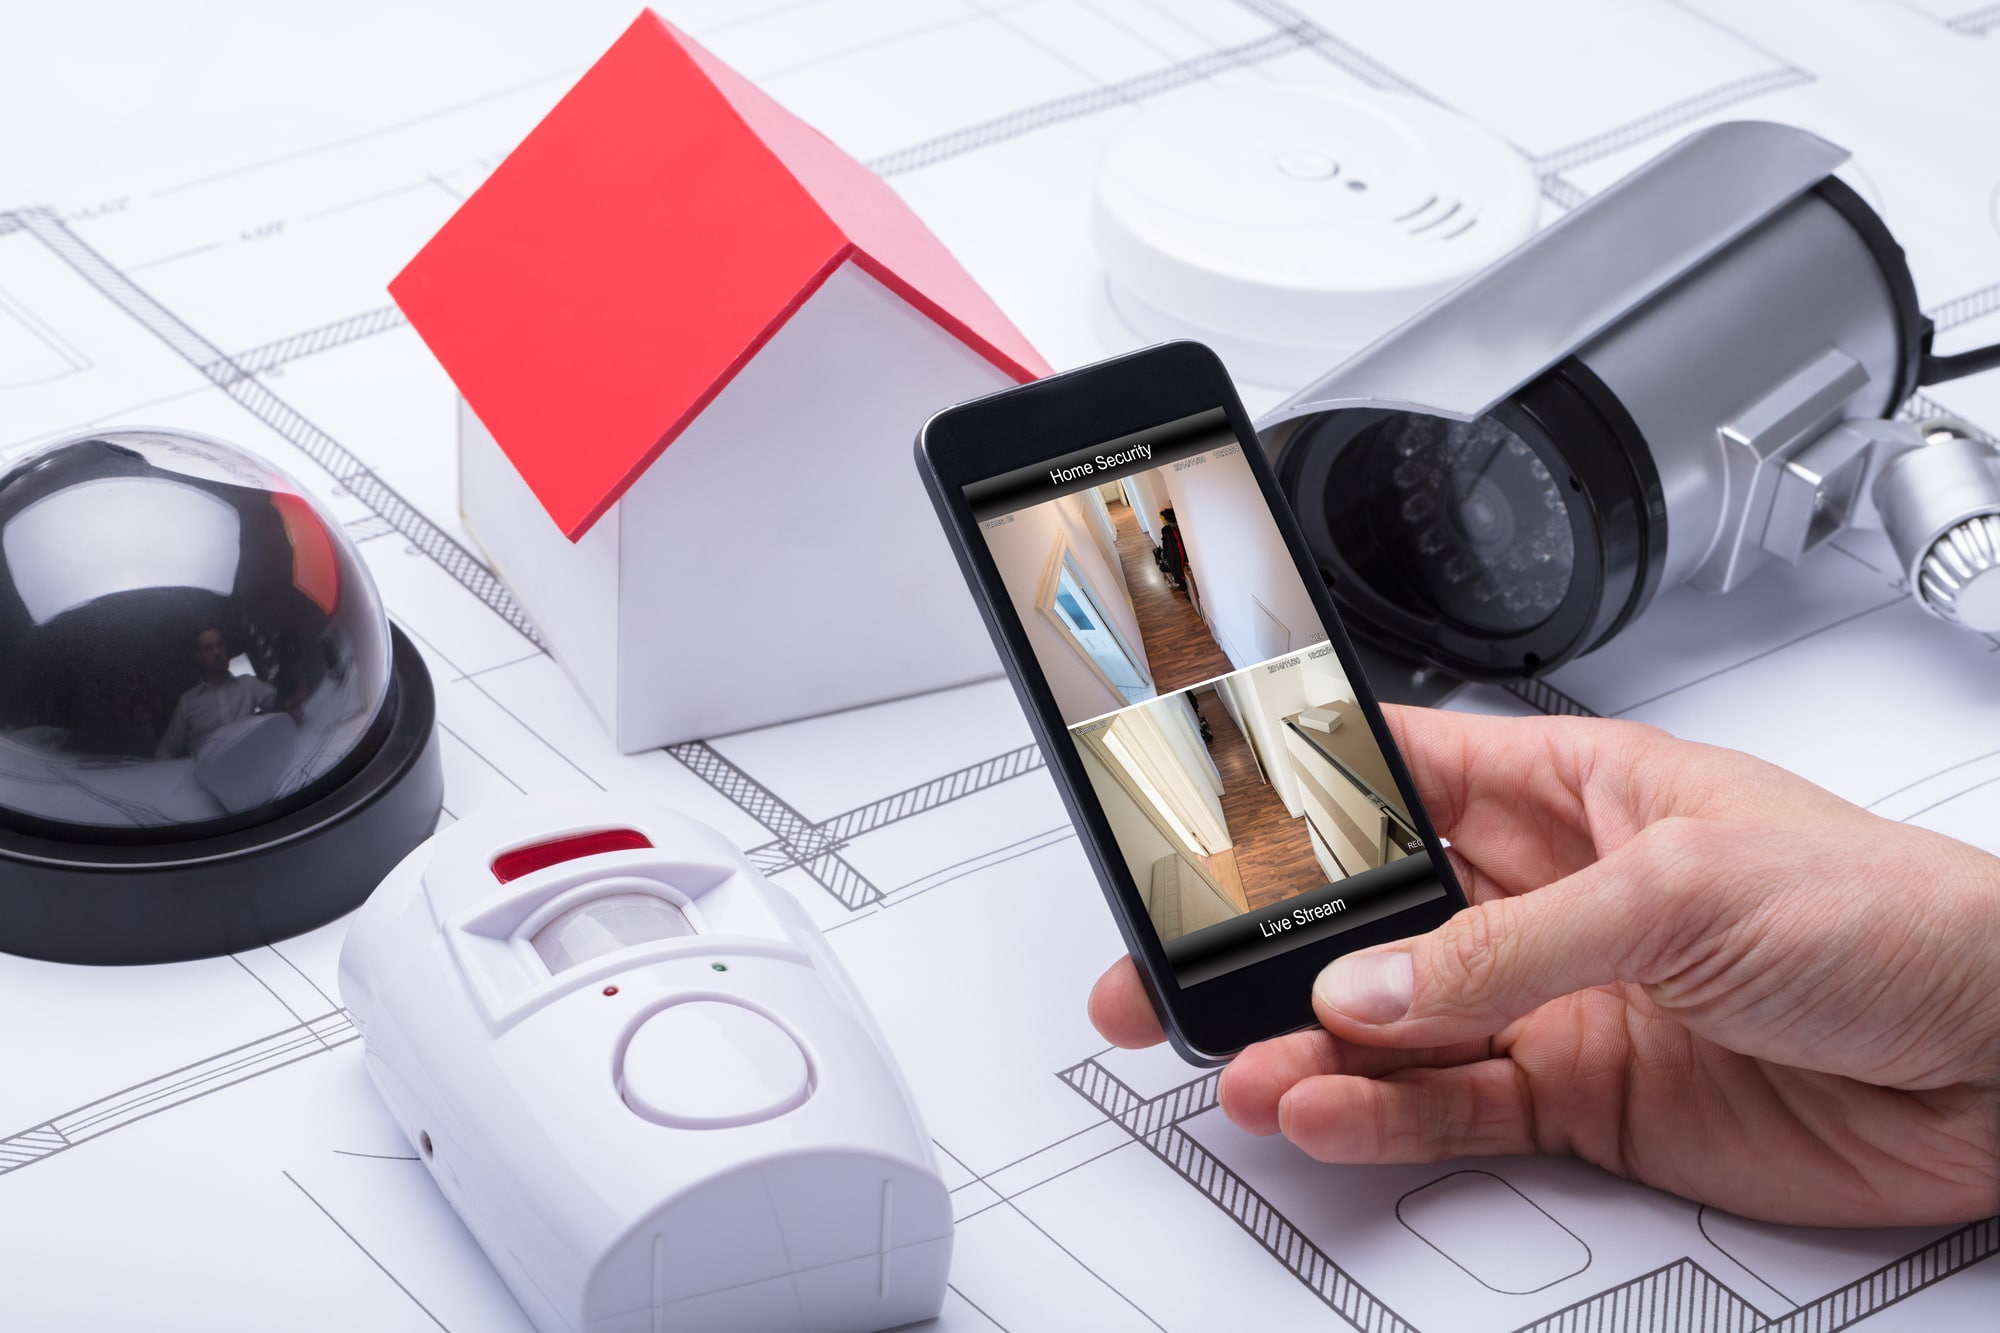 Best Wireless Cctv System For Home Use Uk 2019 Top 10 Picks